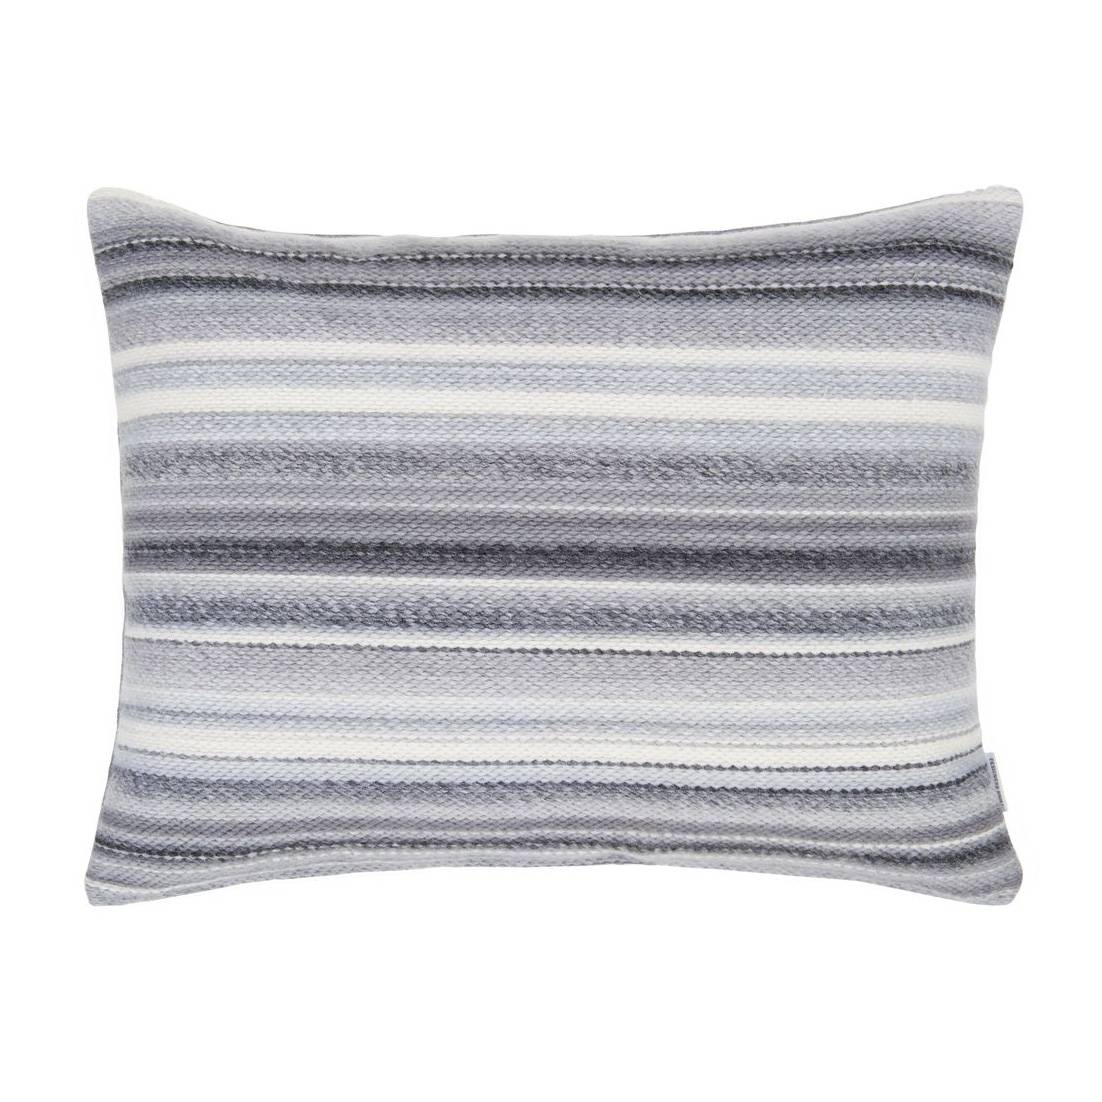 Designers Guild Turrill Charcoal Tyyny 60x45cm